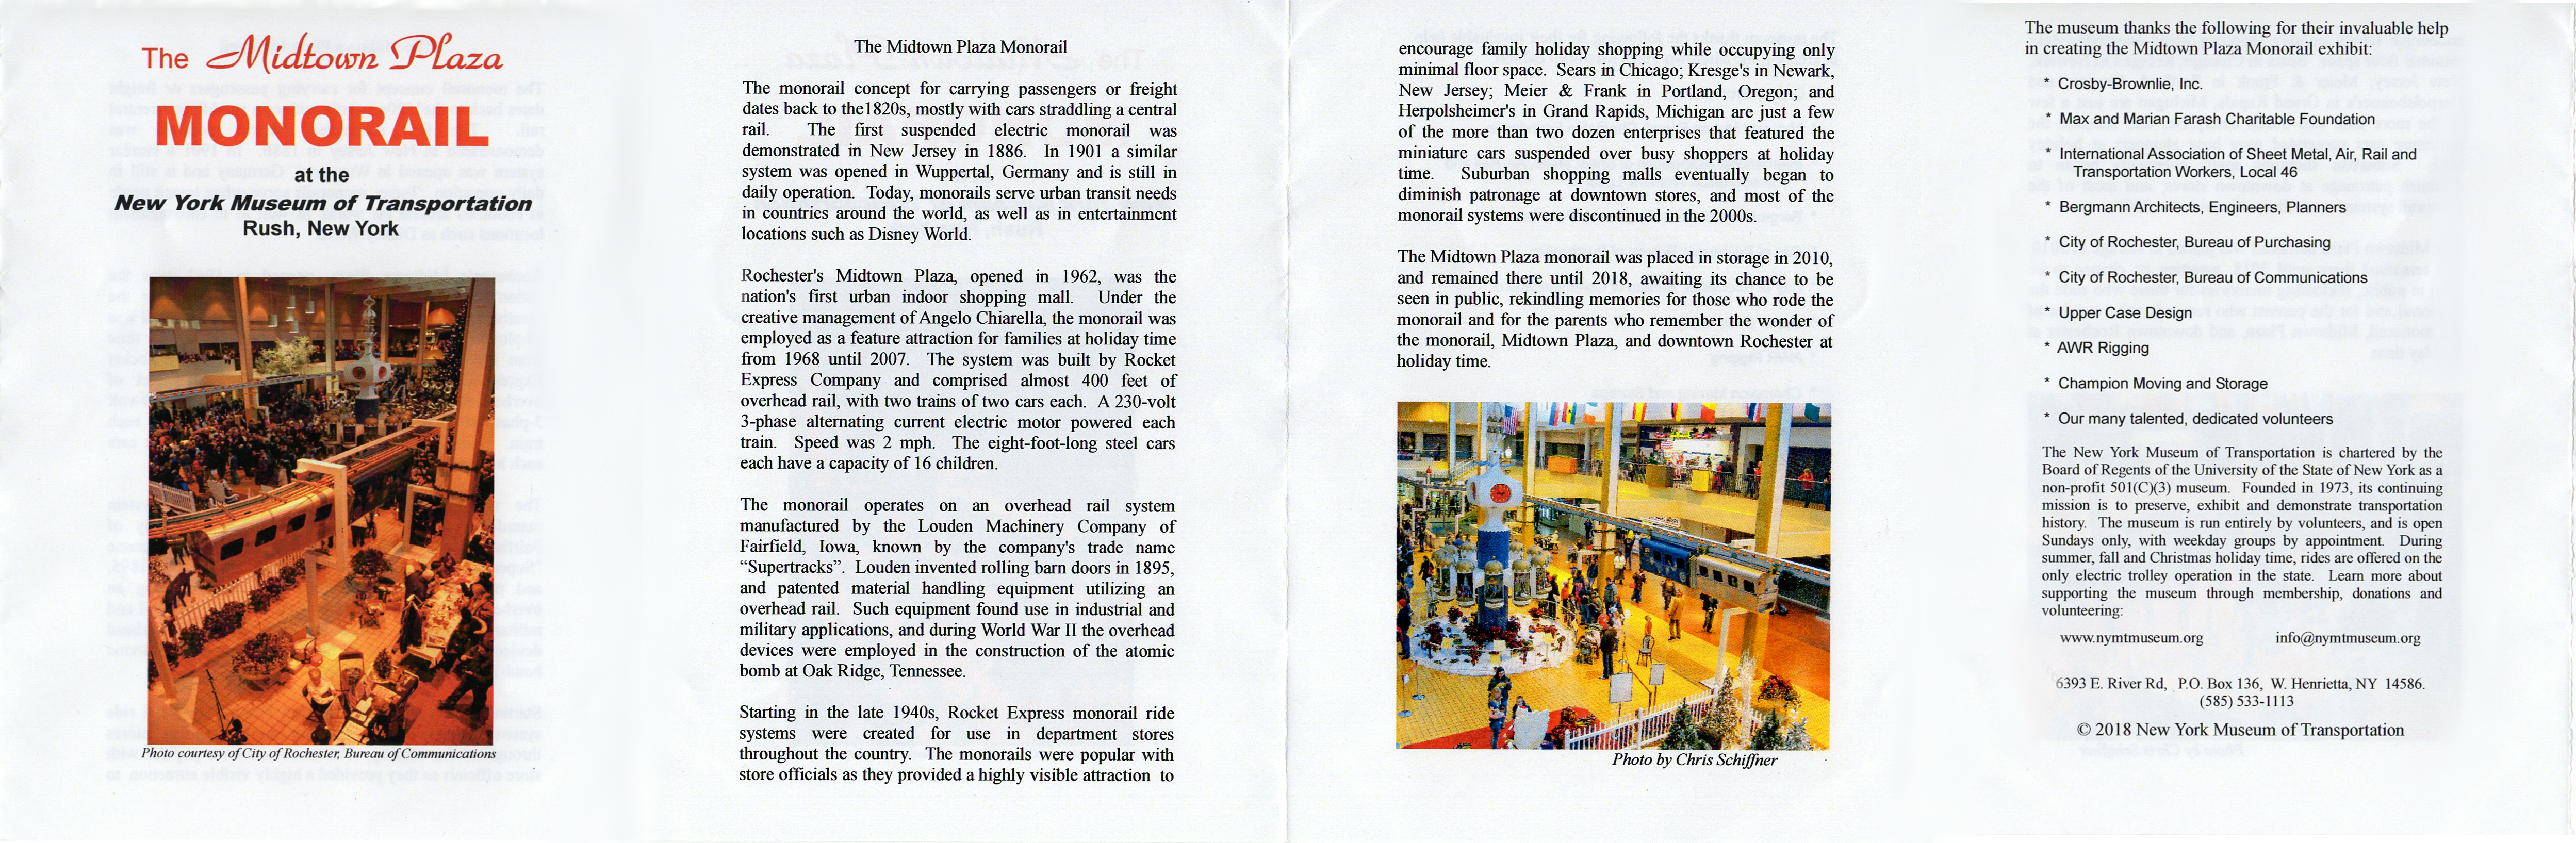 mall_monorail_pamphlet